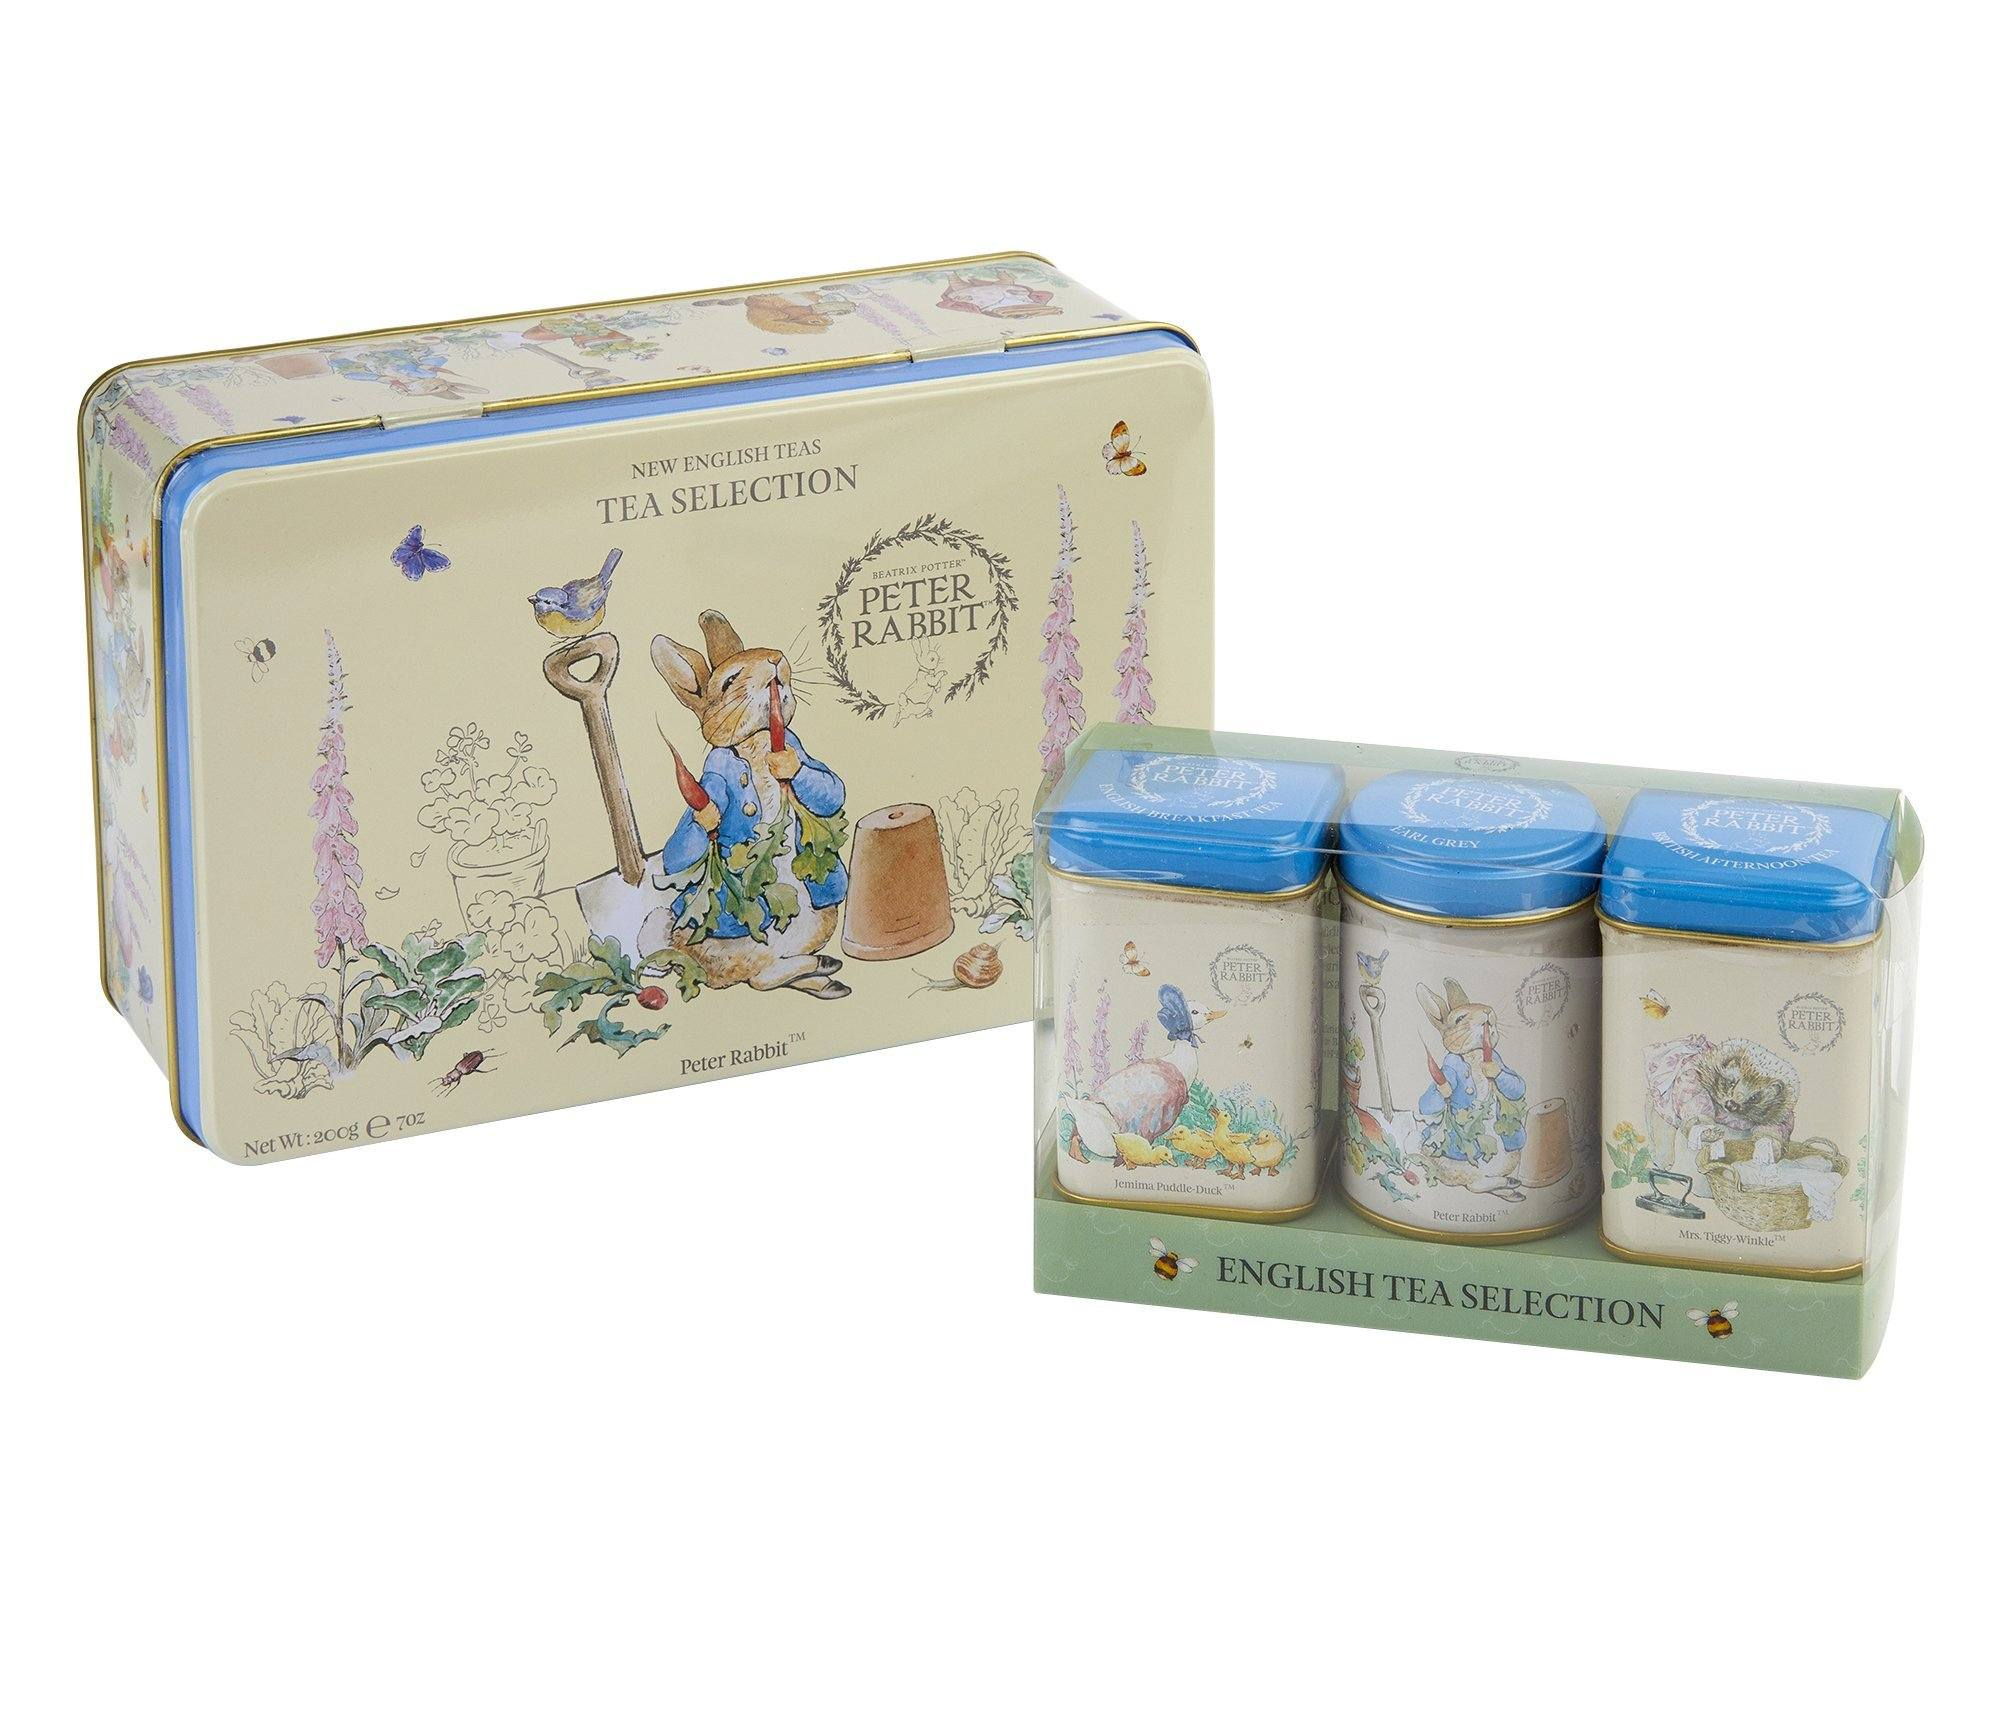 Beatrix Potter Tea Tin Gift Set, teabags and loose-leaf Black Tea New English Teas